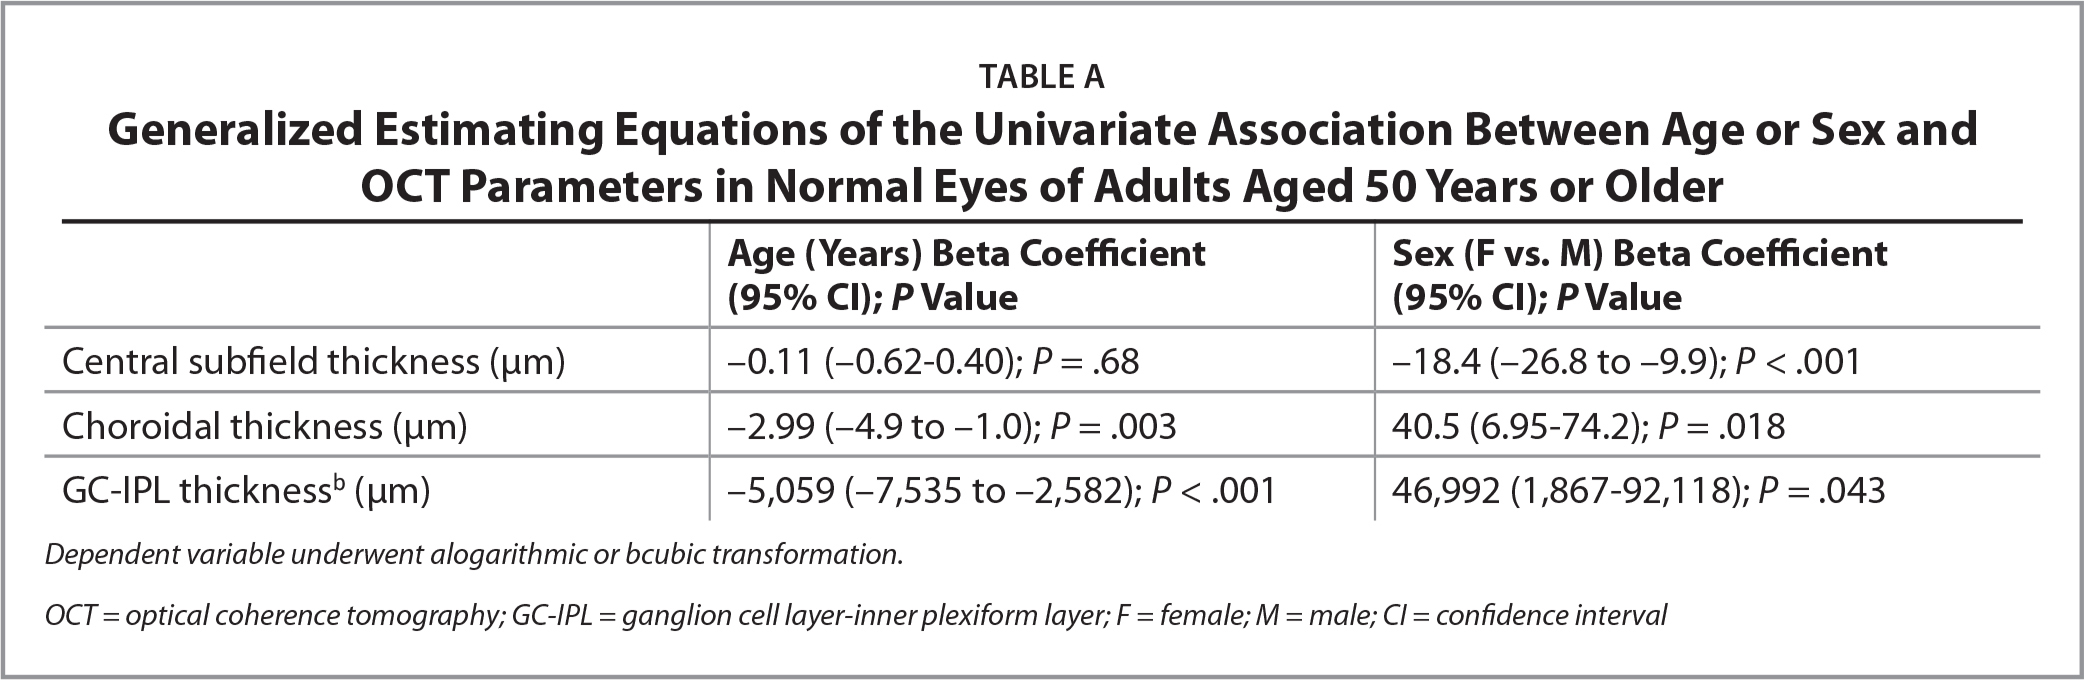 Generalized Estimating Equations of the Univariate Association Between Age or Sex and OCT Parameters in Normal Eyes of Adults Aged 50 Years or Older